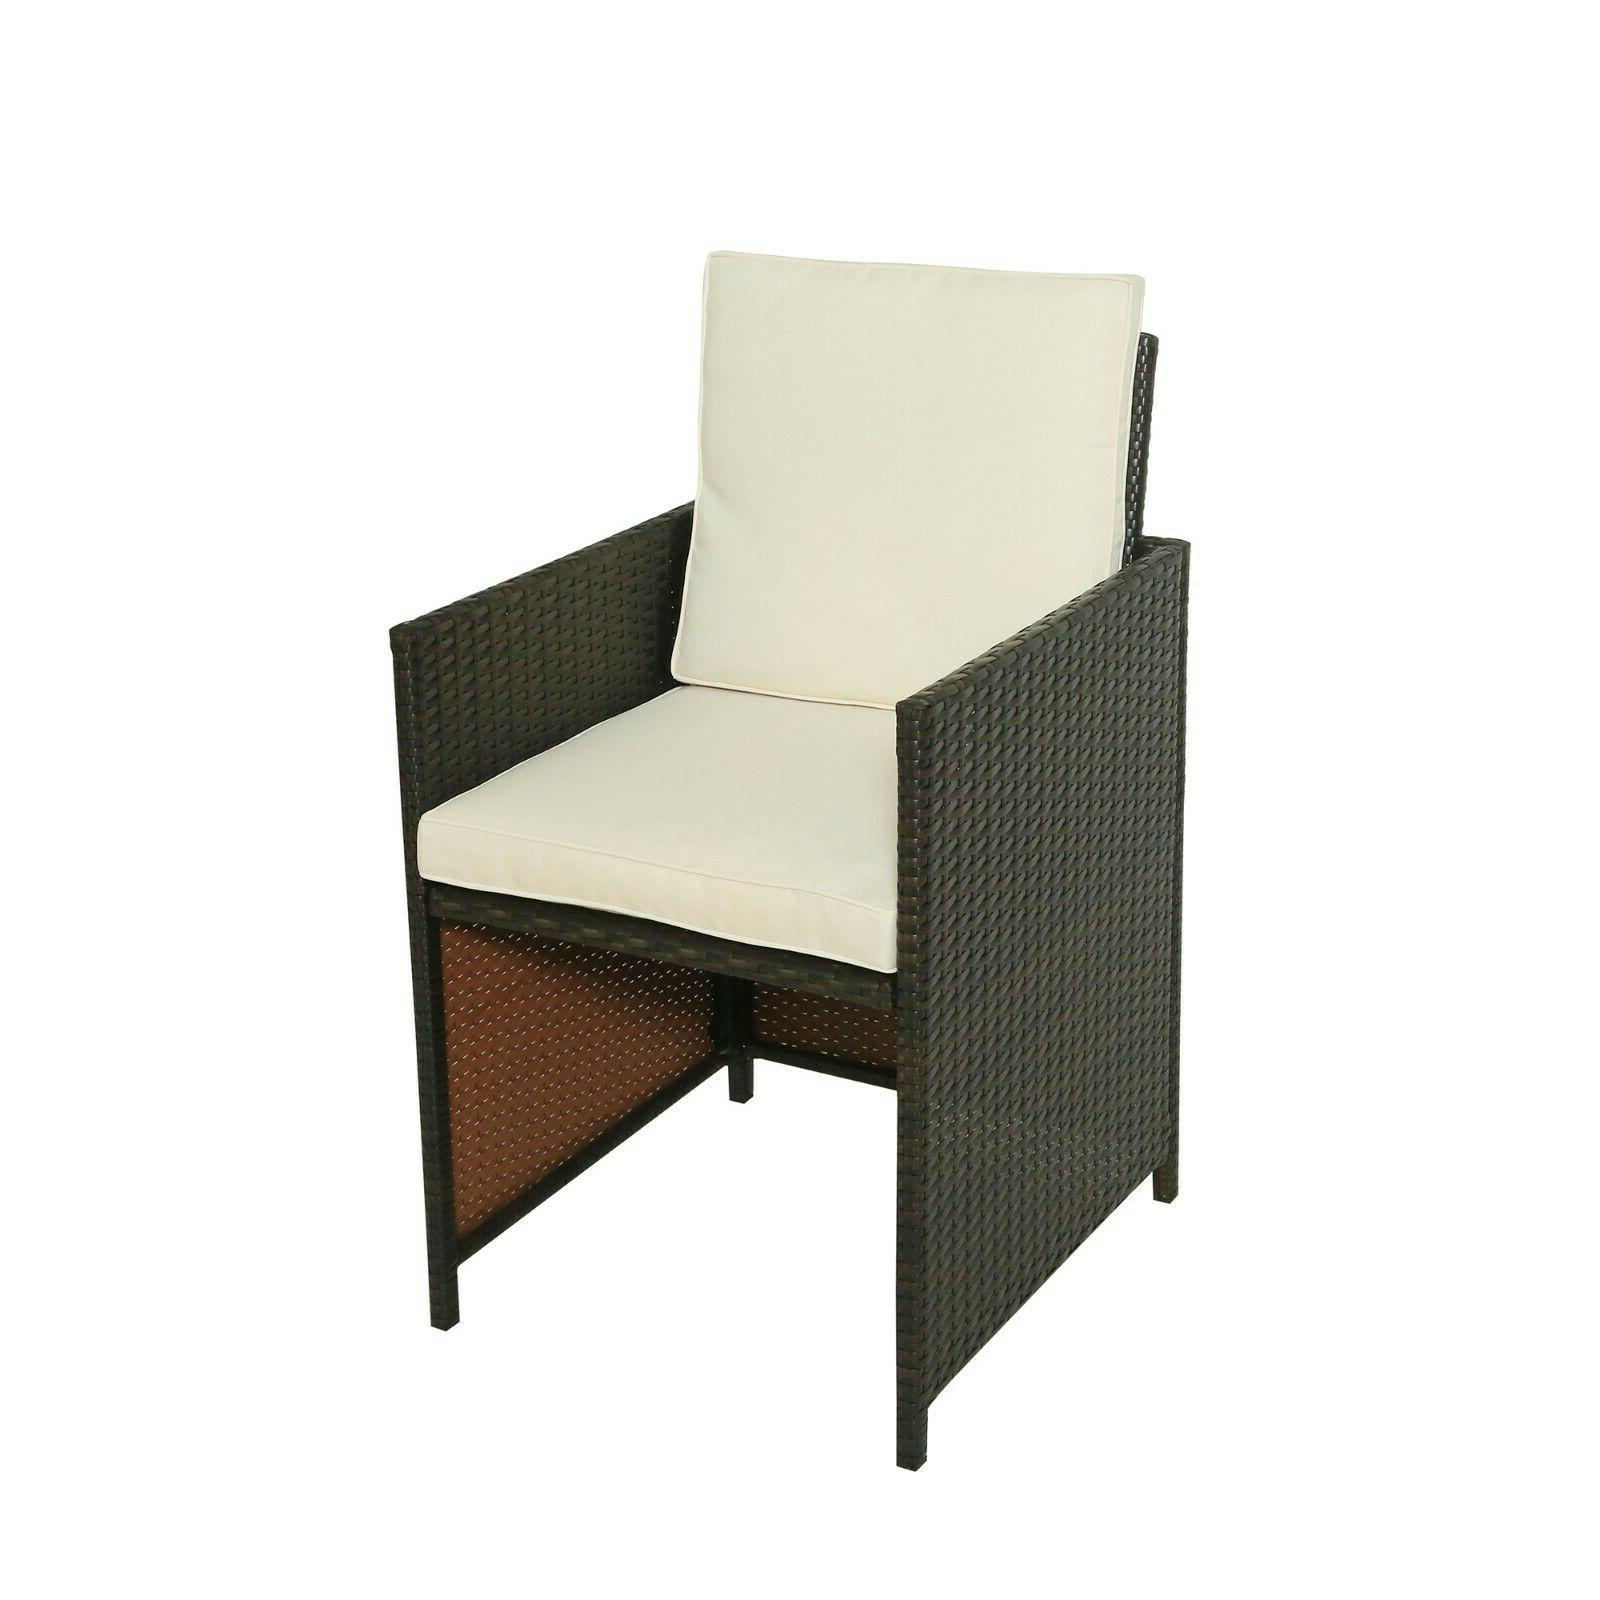 Outdoor Dining Table Rattan Set Family Warranty